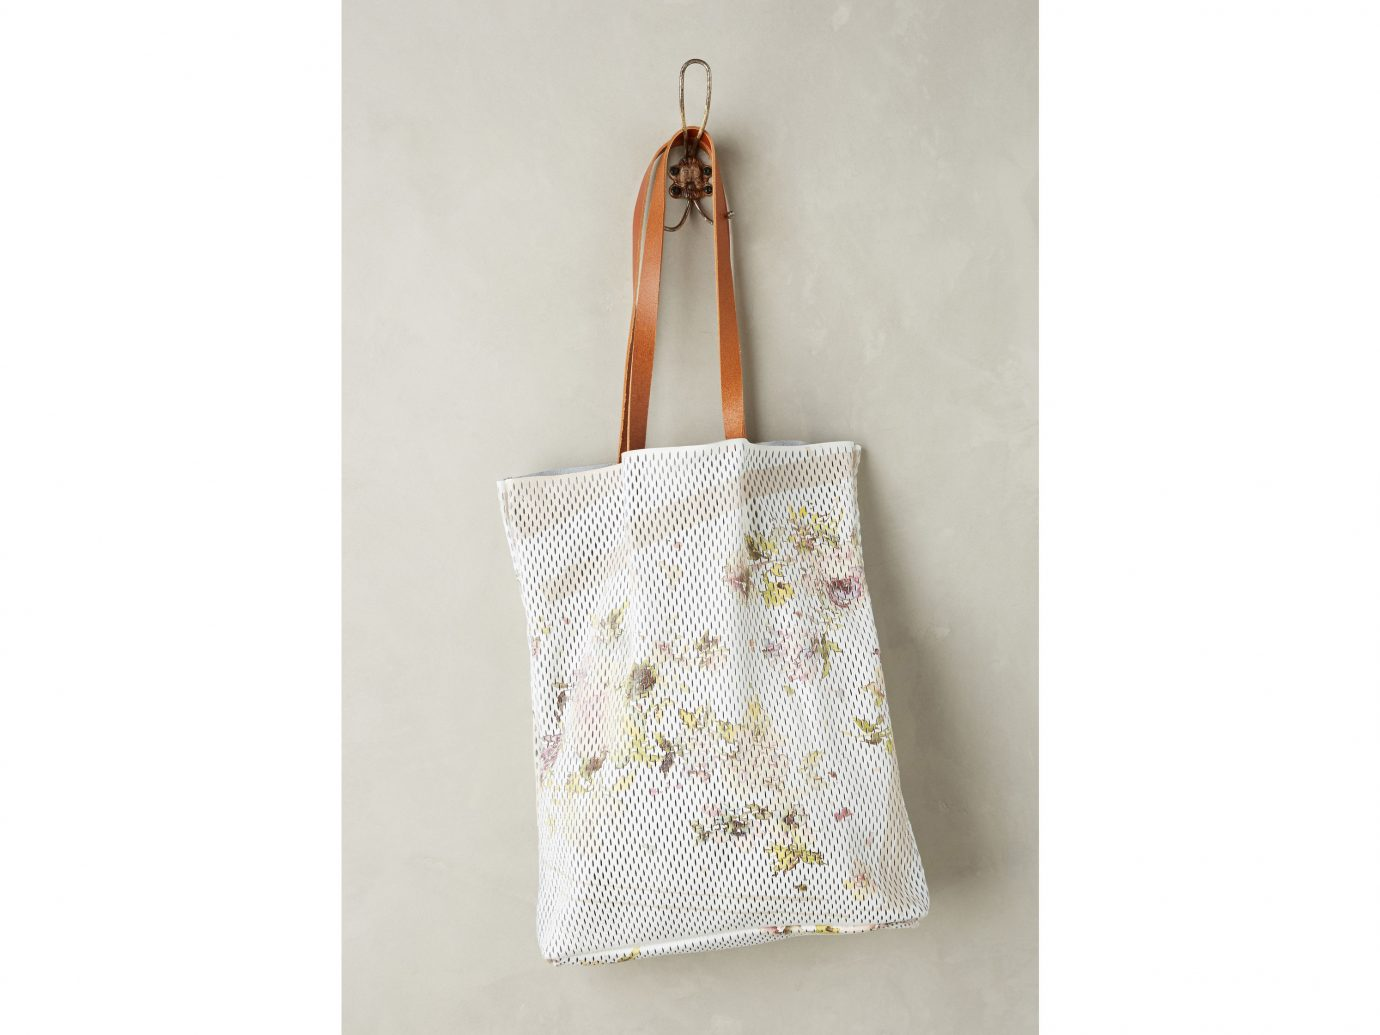 Style + Design handbag bag indoor tote bag accessory fashion accessory textile brand beige pattern material